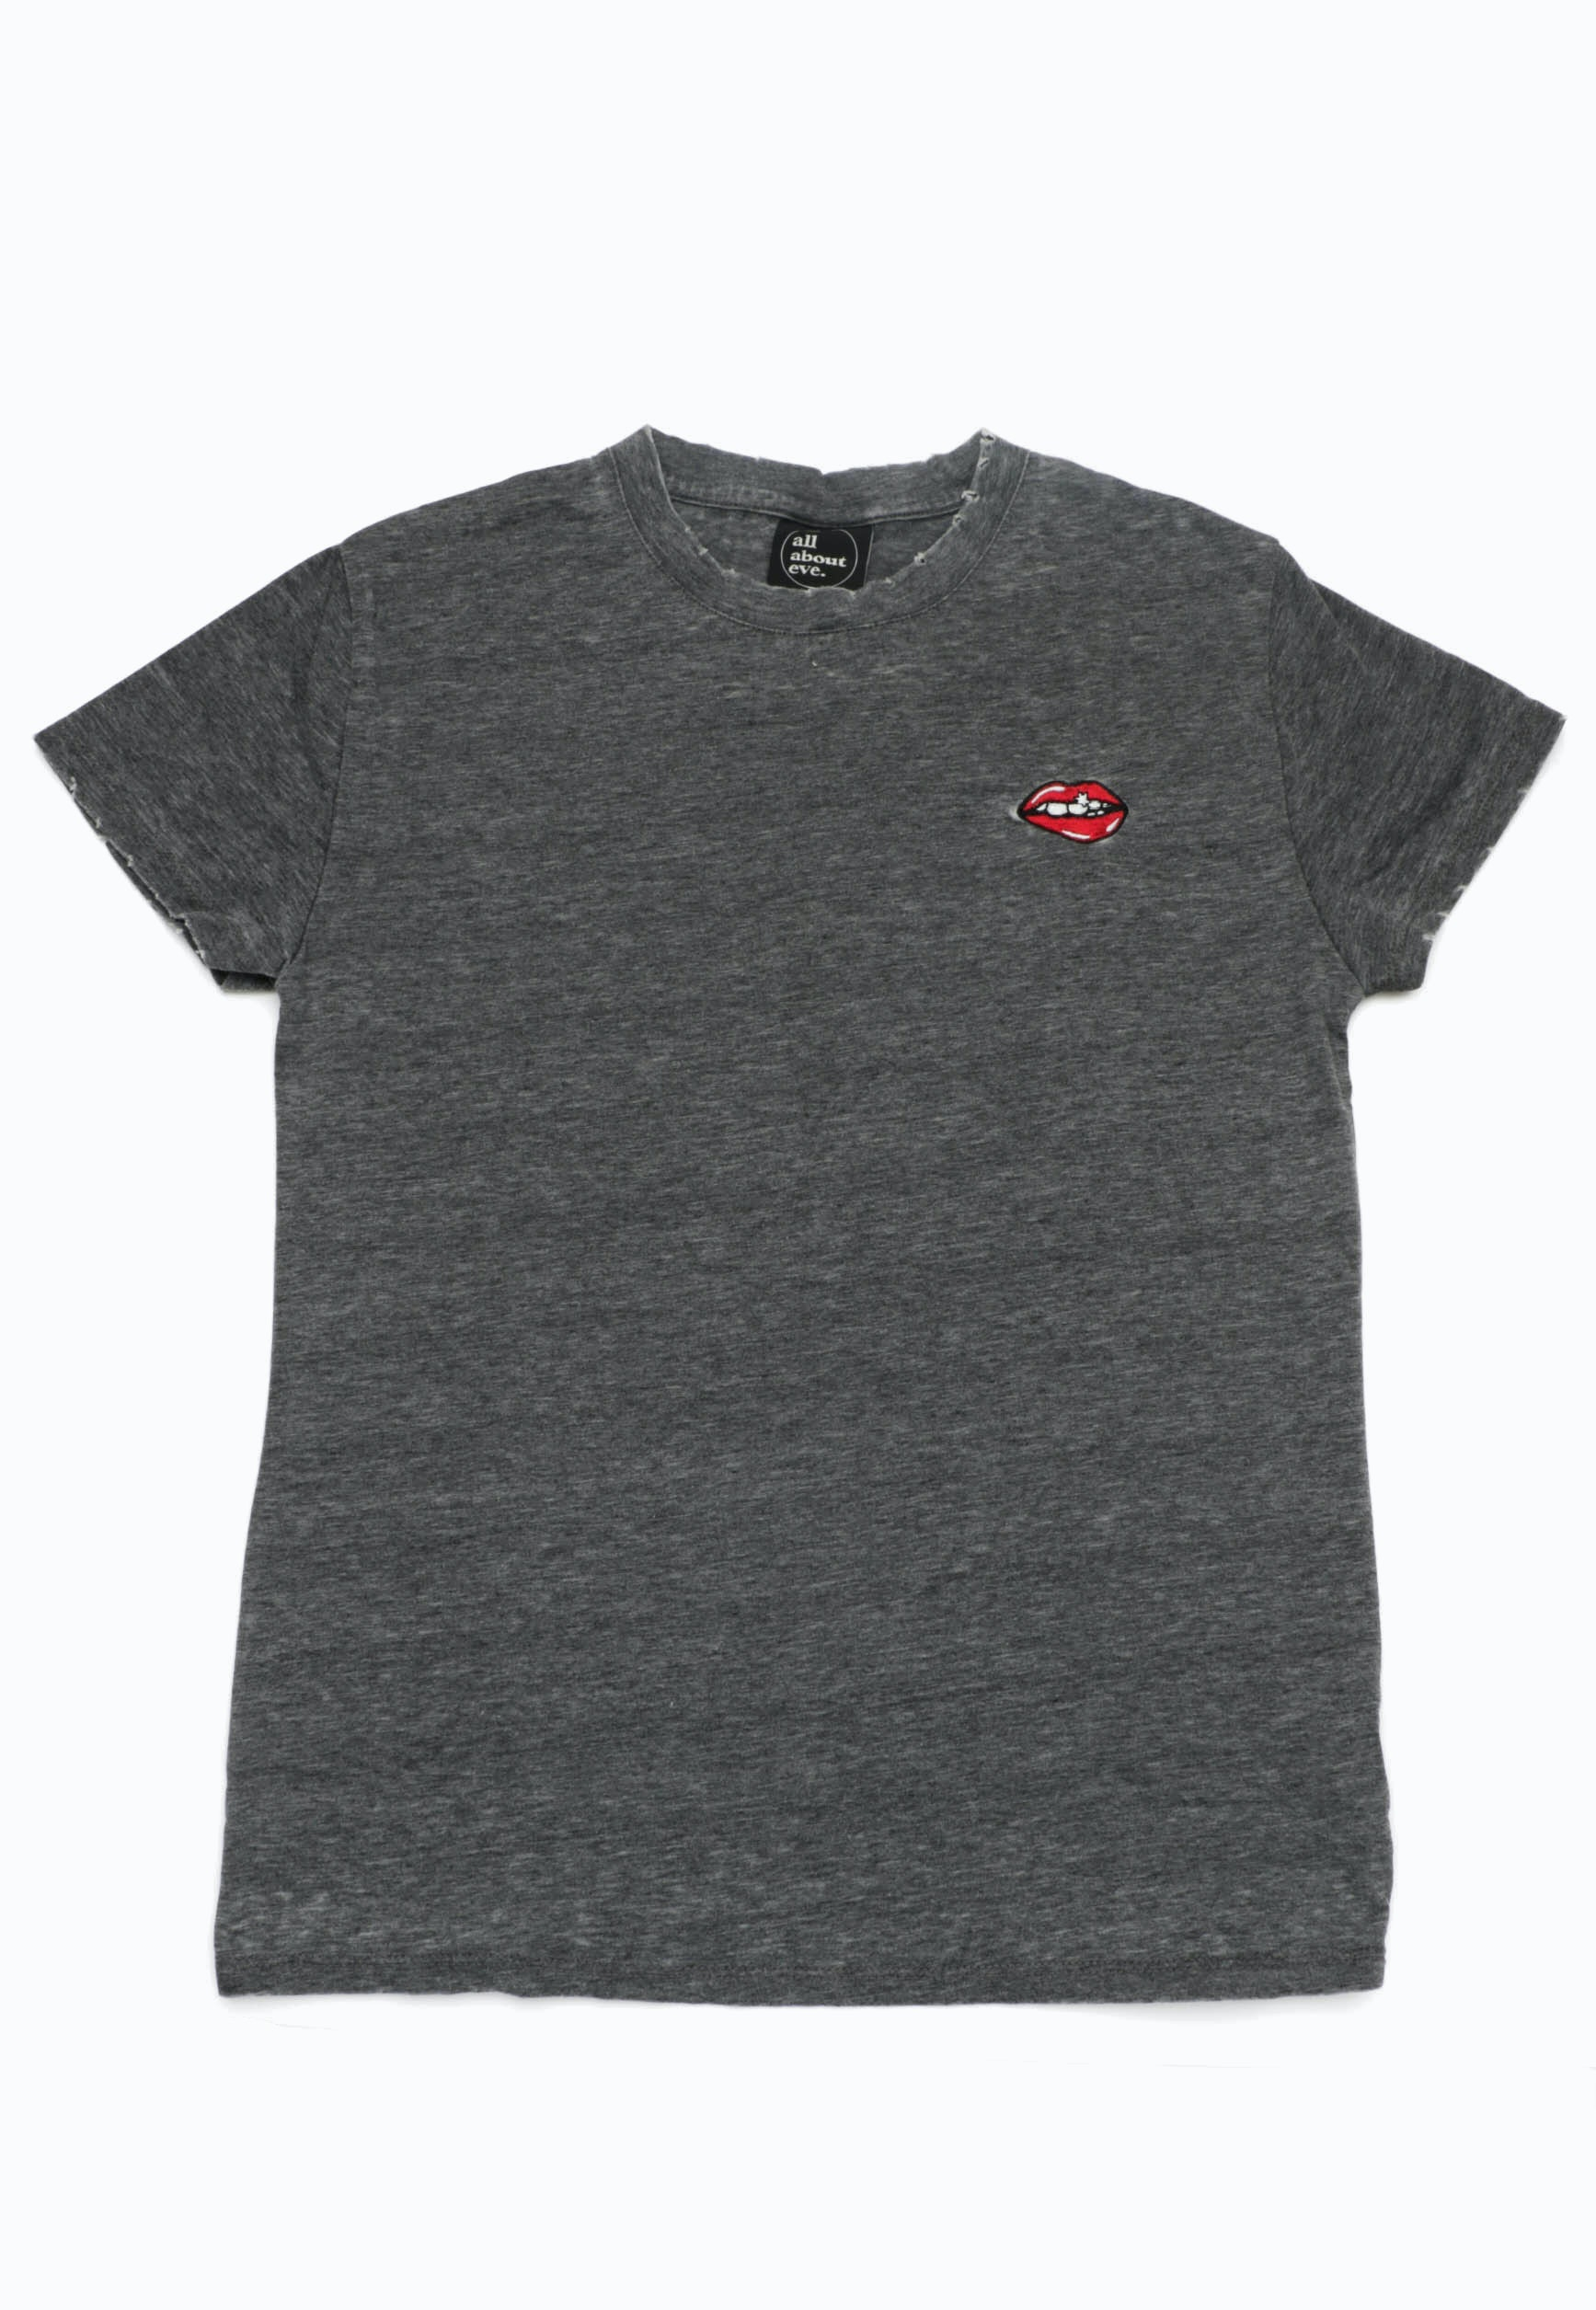 All About Eve - Cherry Tee - Grey Marl